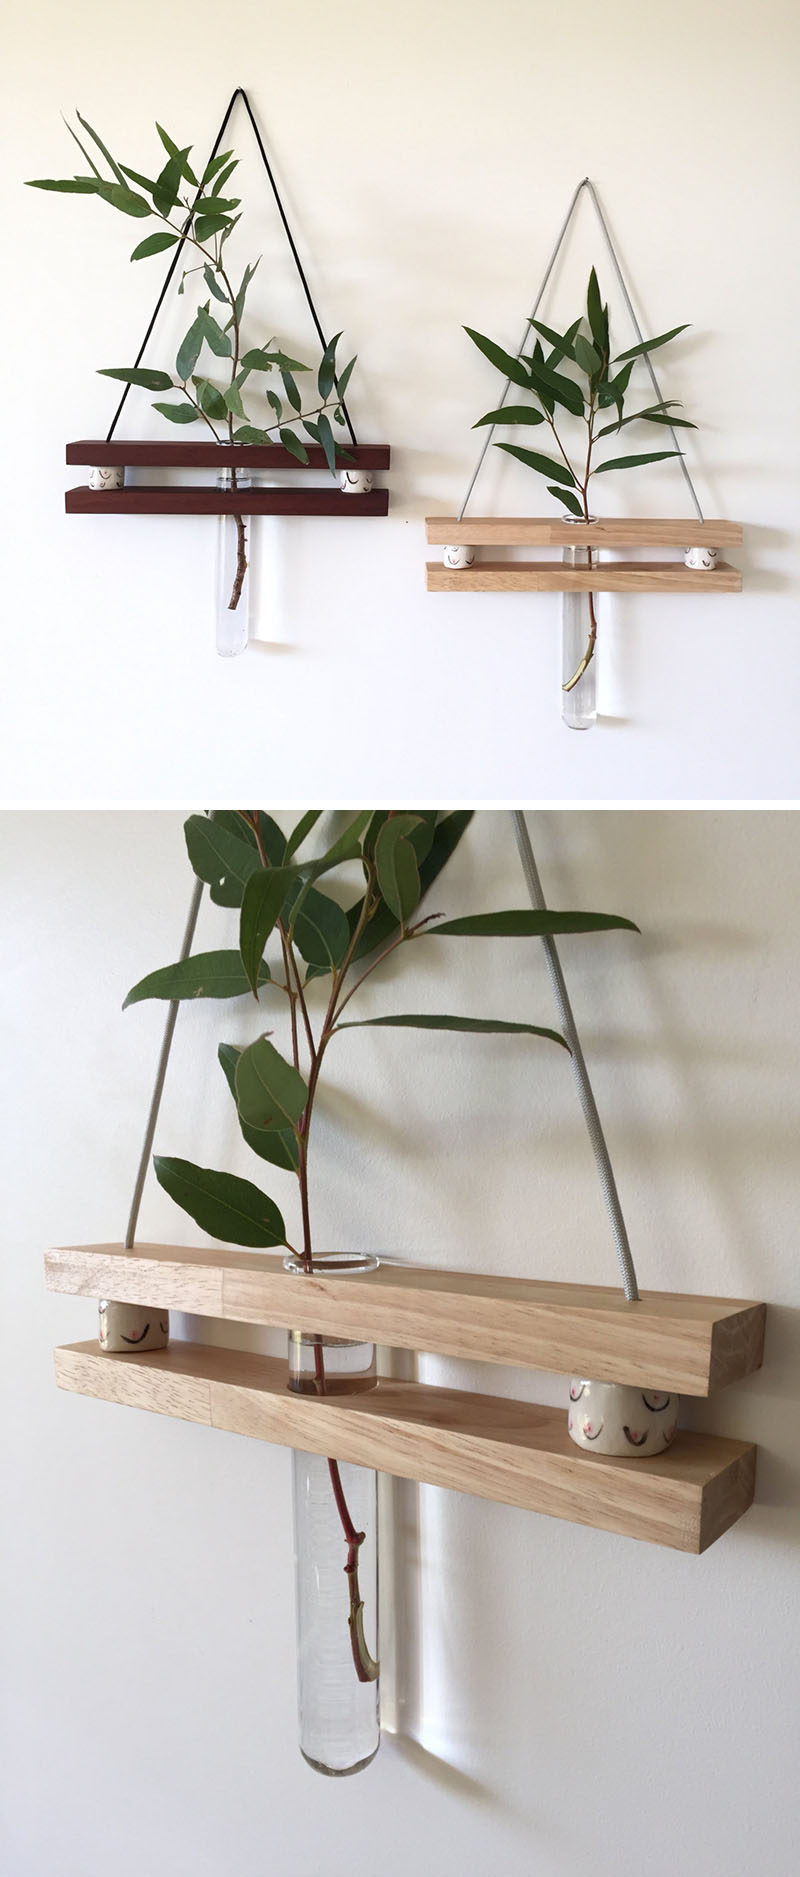 Aweinspiring Wall Shelves Come With Some Designsincluding A Small Bud Allowing You To Display A Smallflower Or Leaf Se Small Shelves Hang On Your Wall Just Like A Piece Art A Variety interior Pictures Of Wall Shelves